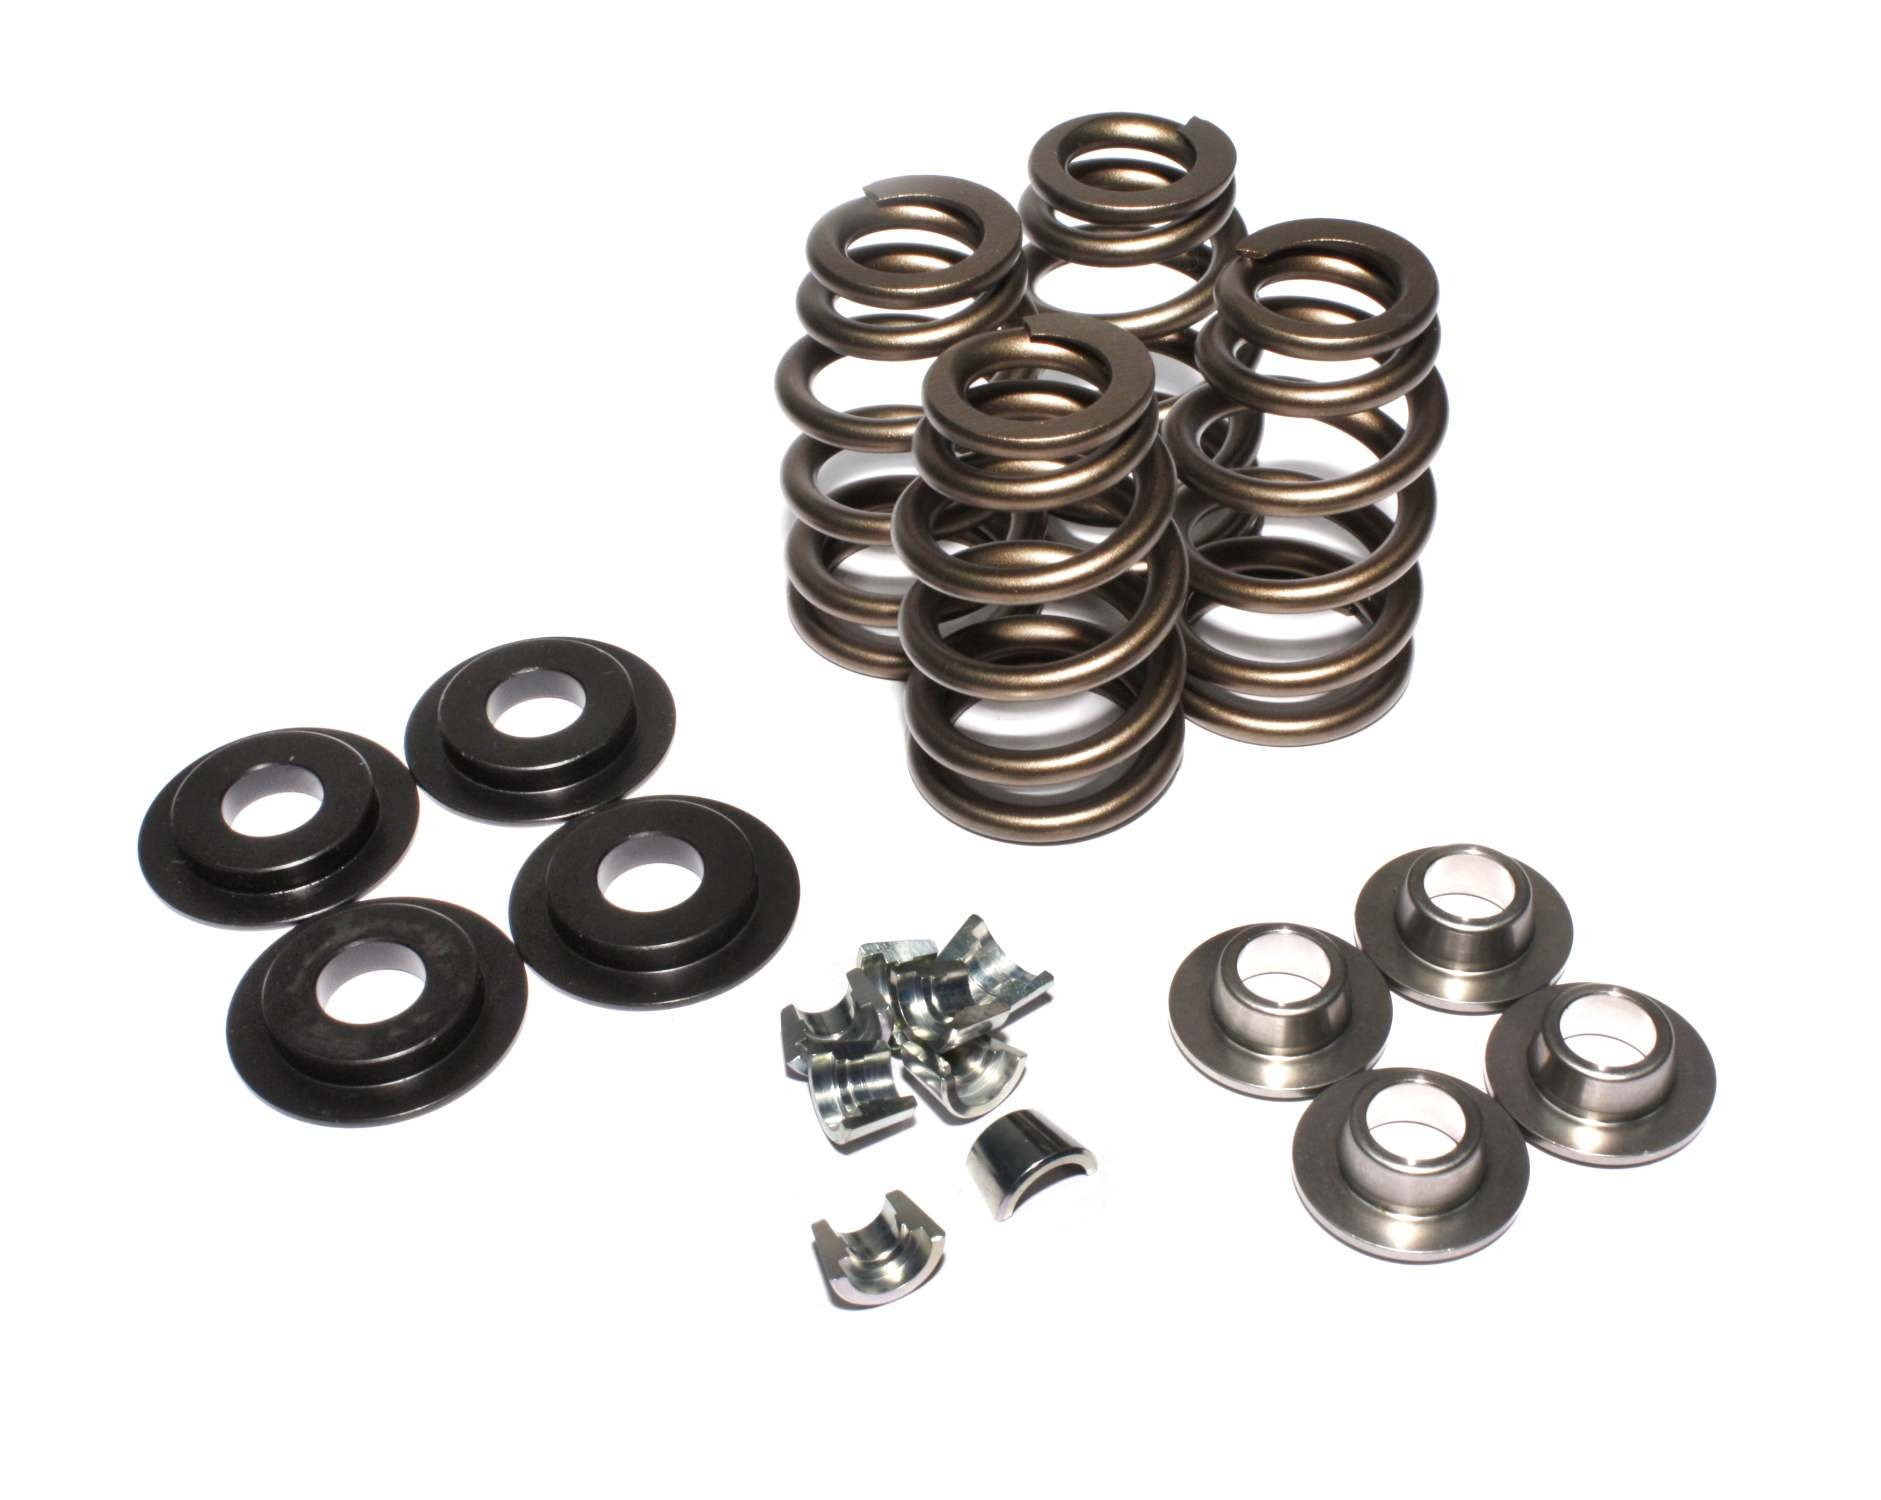 COMP Cams 9706-KIT Valve Spring Kit (Harley) by Comp Cams (Image #1)